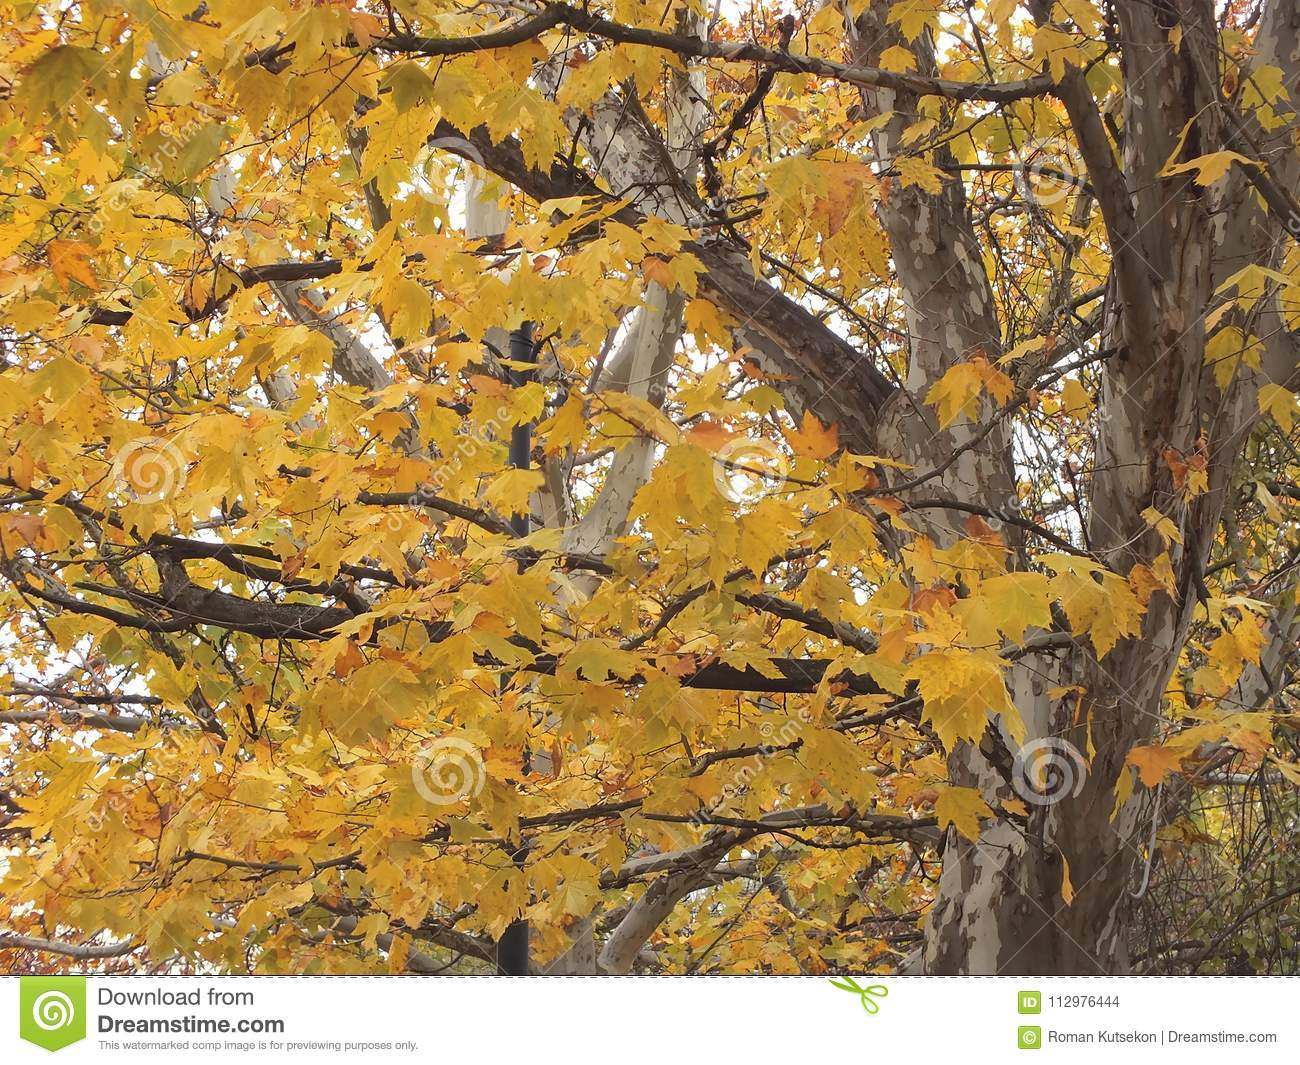 Sycamore tree in fall